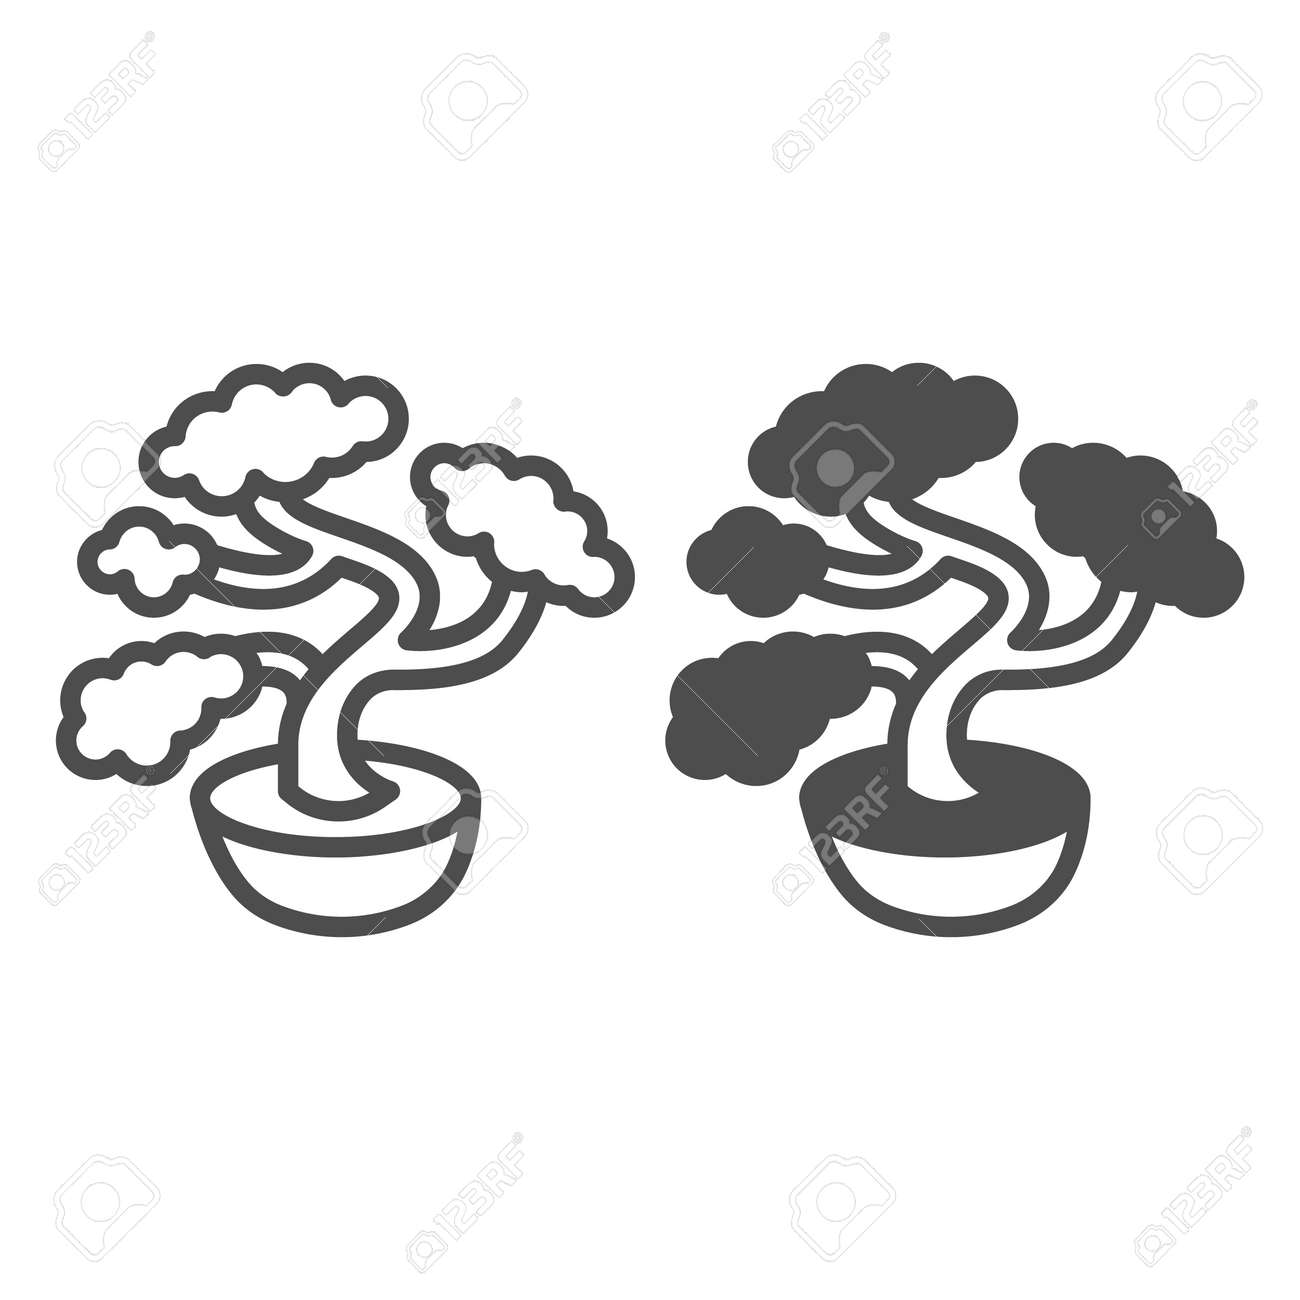 Bonsai tree, potted plant line and solid icon, asian culture concept, Japanese miniature tree vector sign on white background, outline style icon for mobile concept and web design. Vector graphics. - 173433549